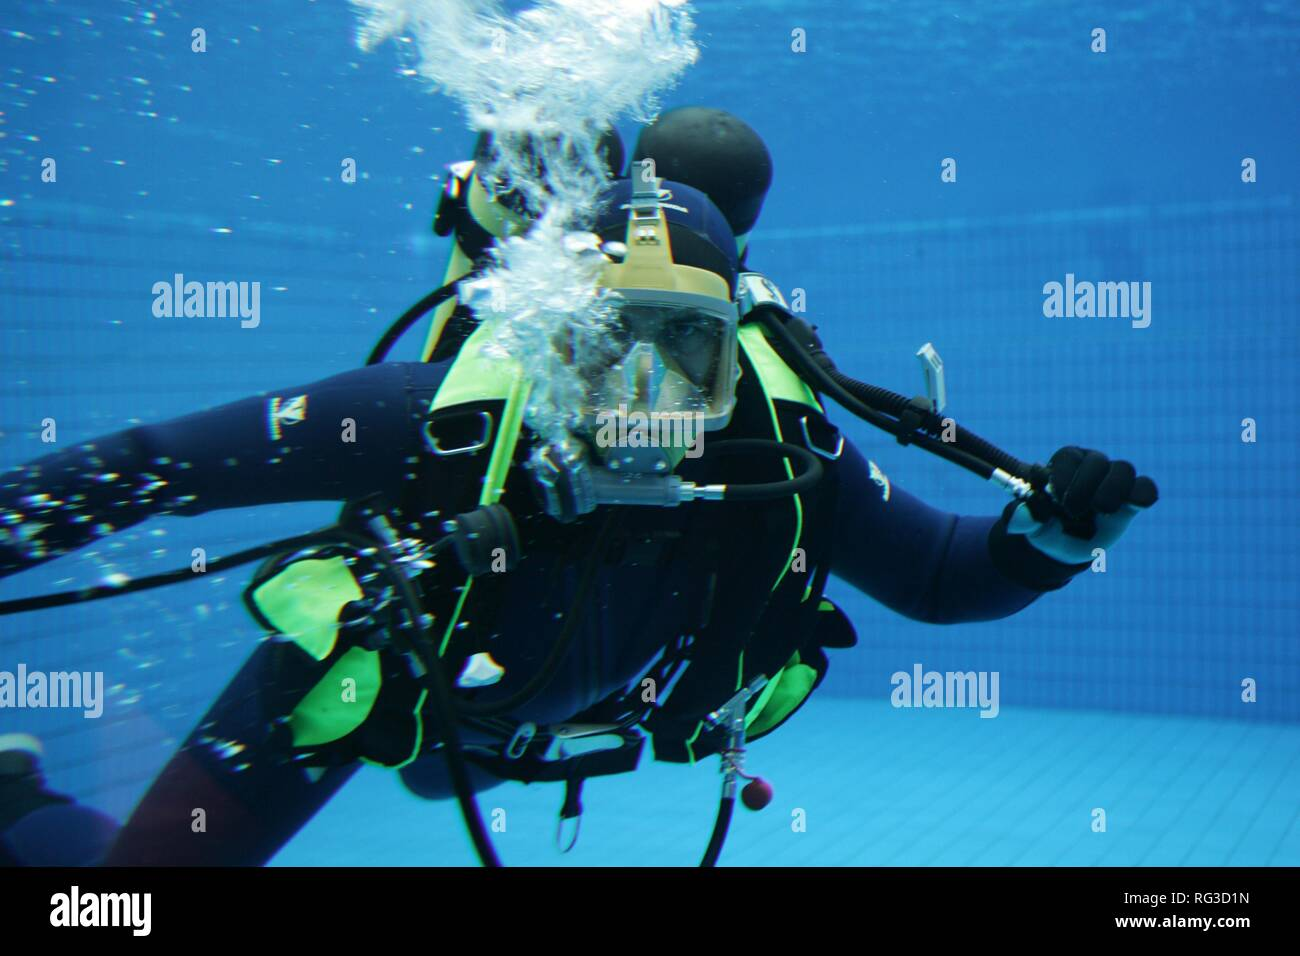 DEU, Federal Republic of Germany, Essen : Rescue diver of a fire brigade at a training in a swimming pool. Stock Photo